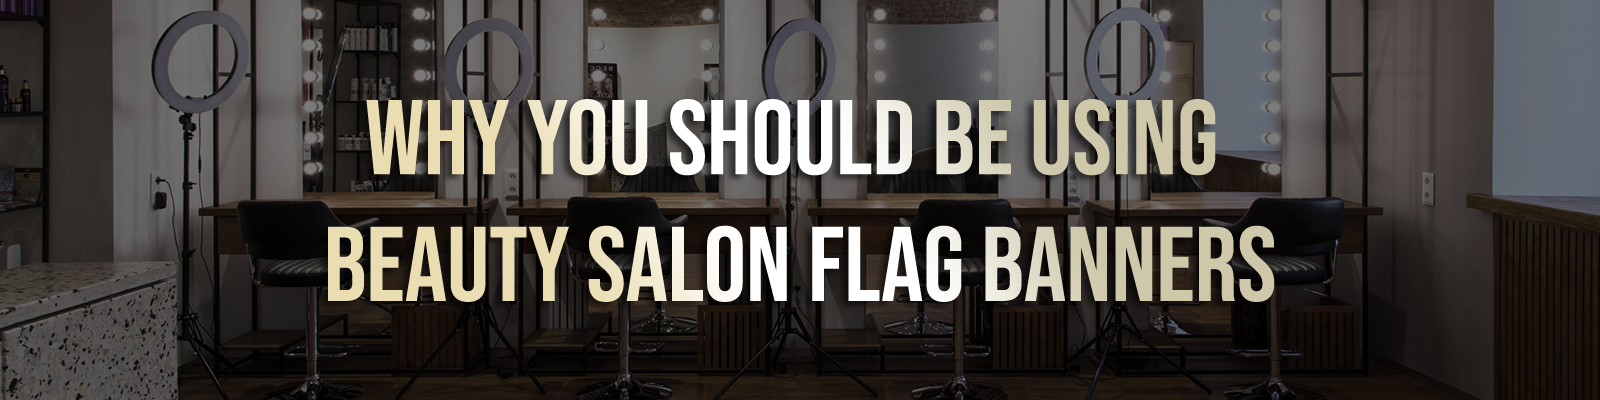 Why You Should Be Using Beauty Salon Flag Banners